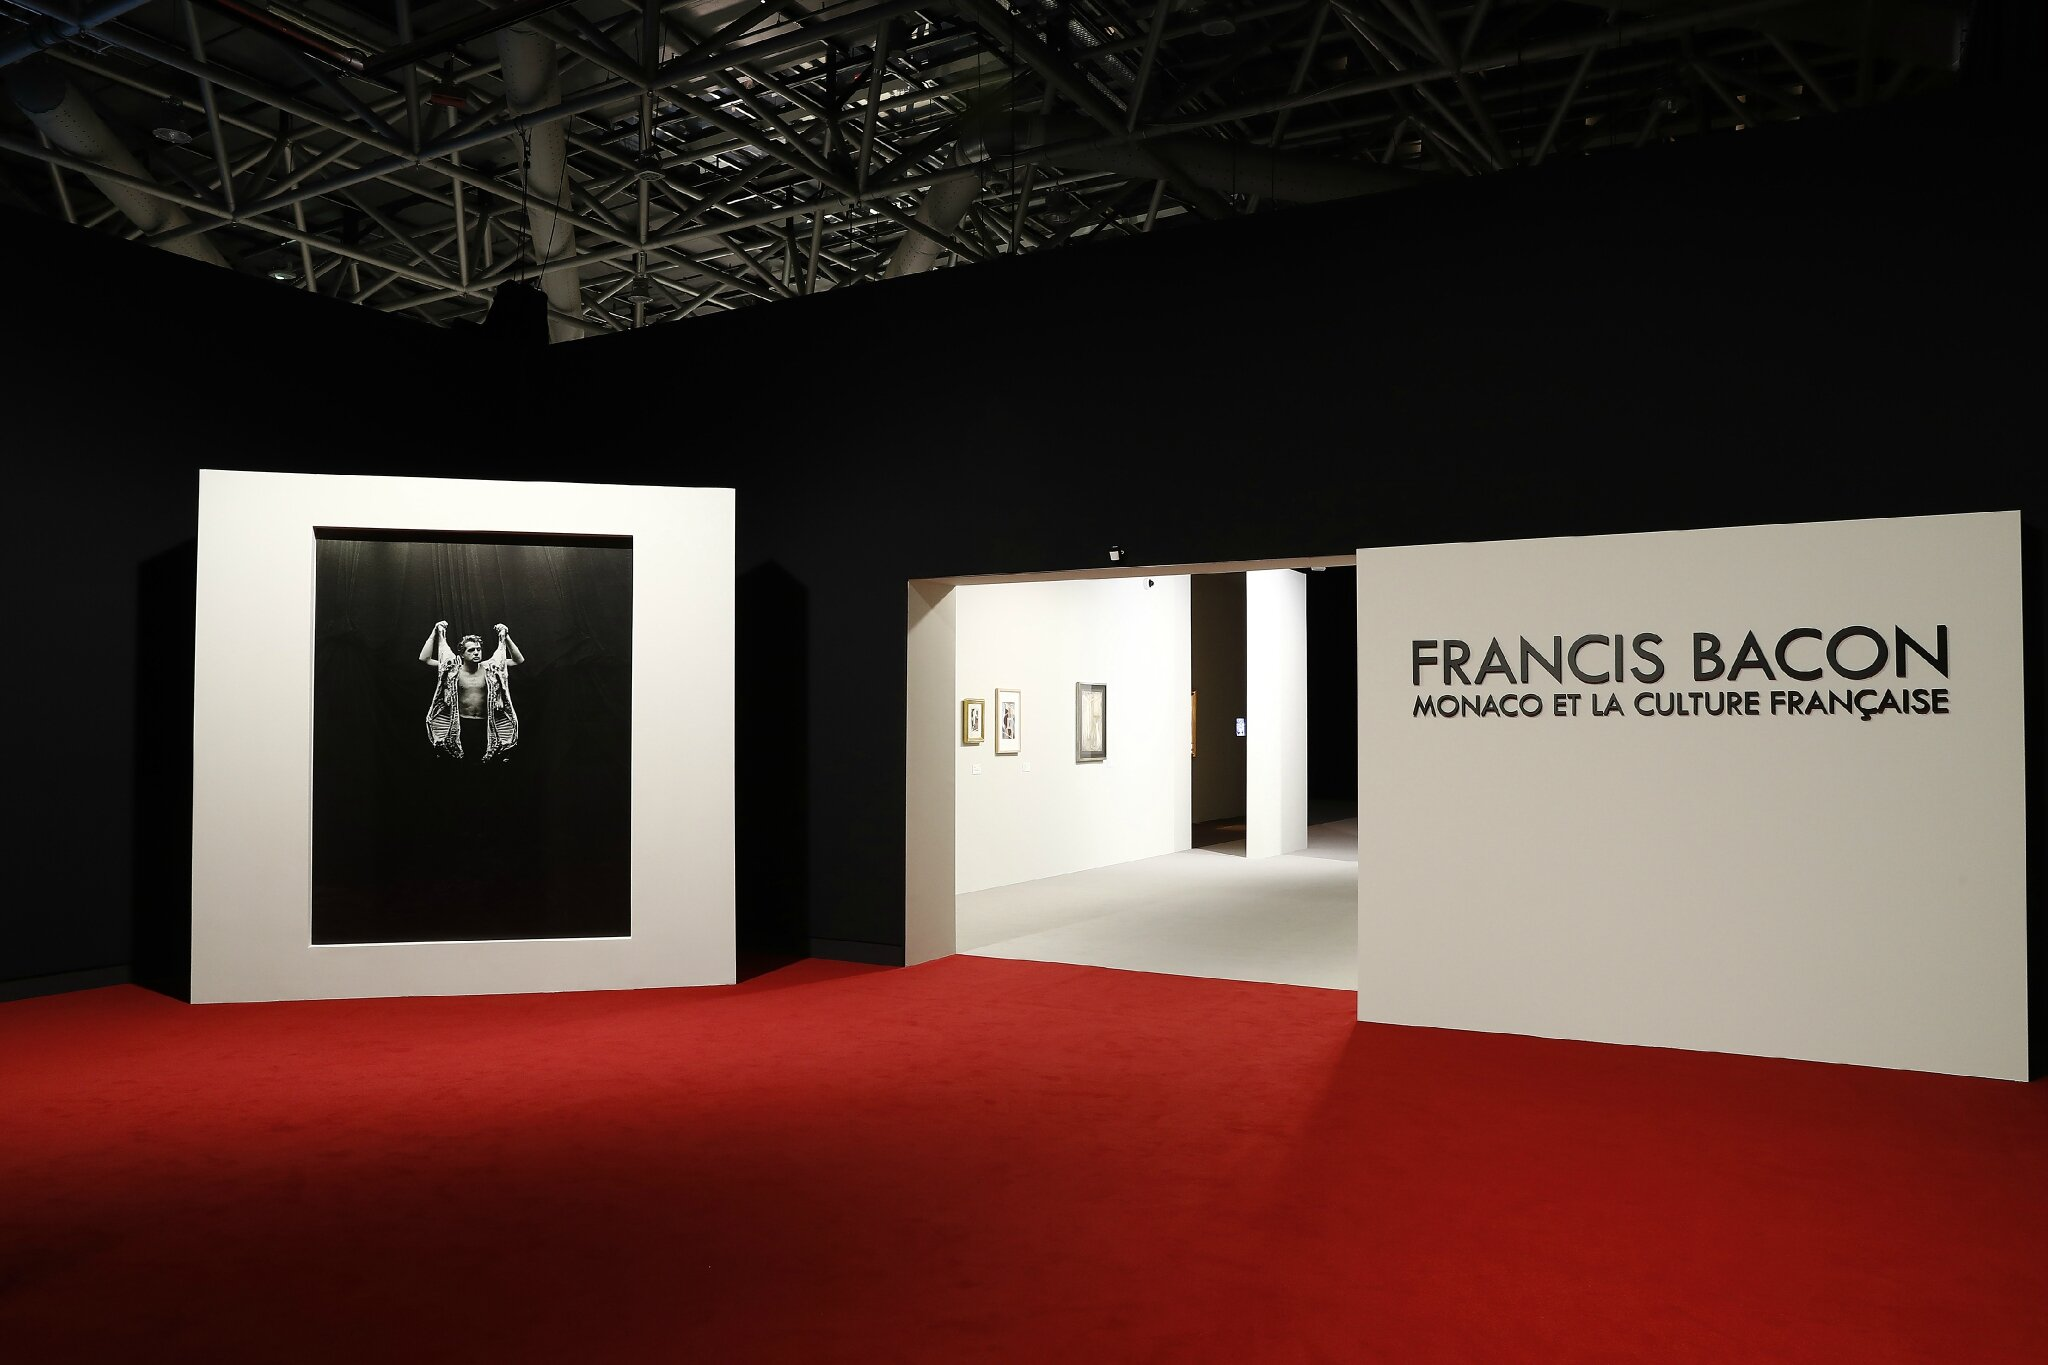 Francis Bacon, Monaco and French culture is focus of exhibition at Grimaldi Forum